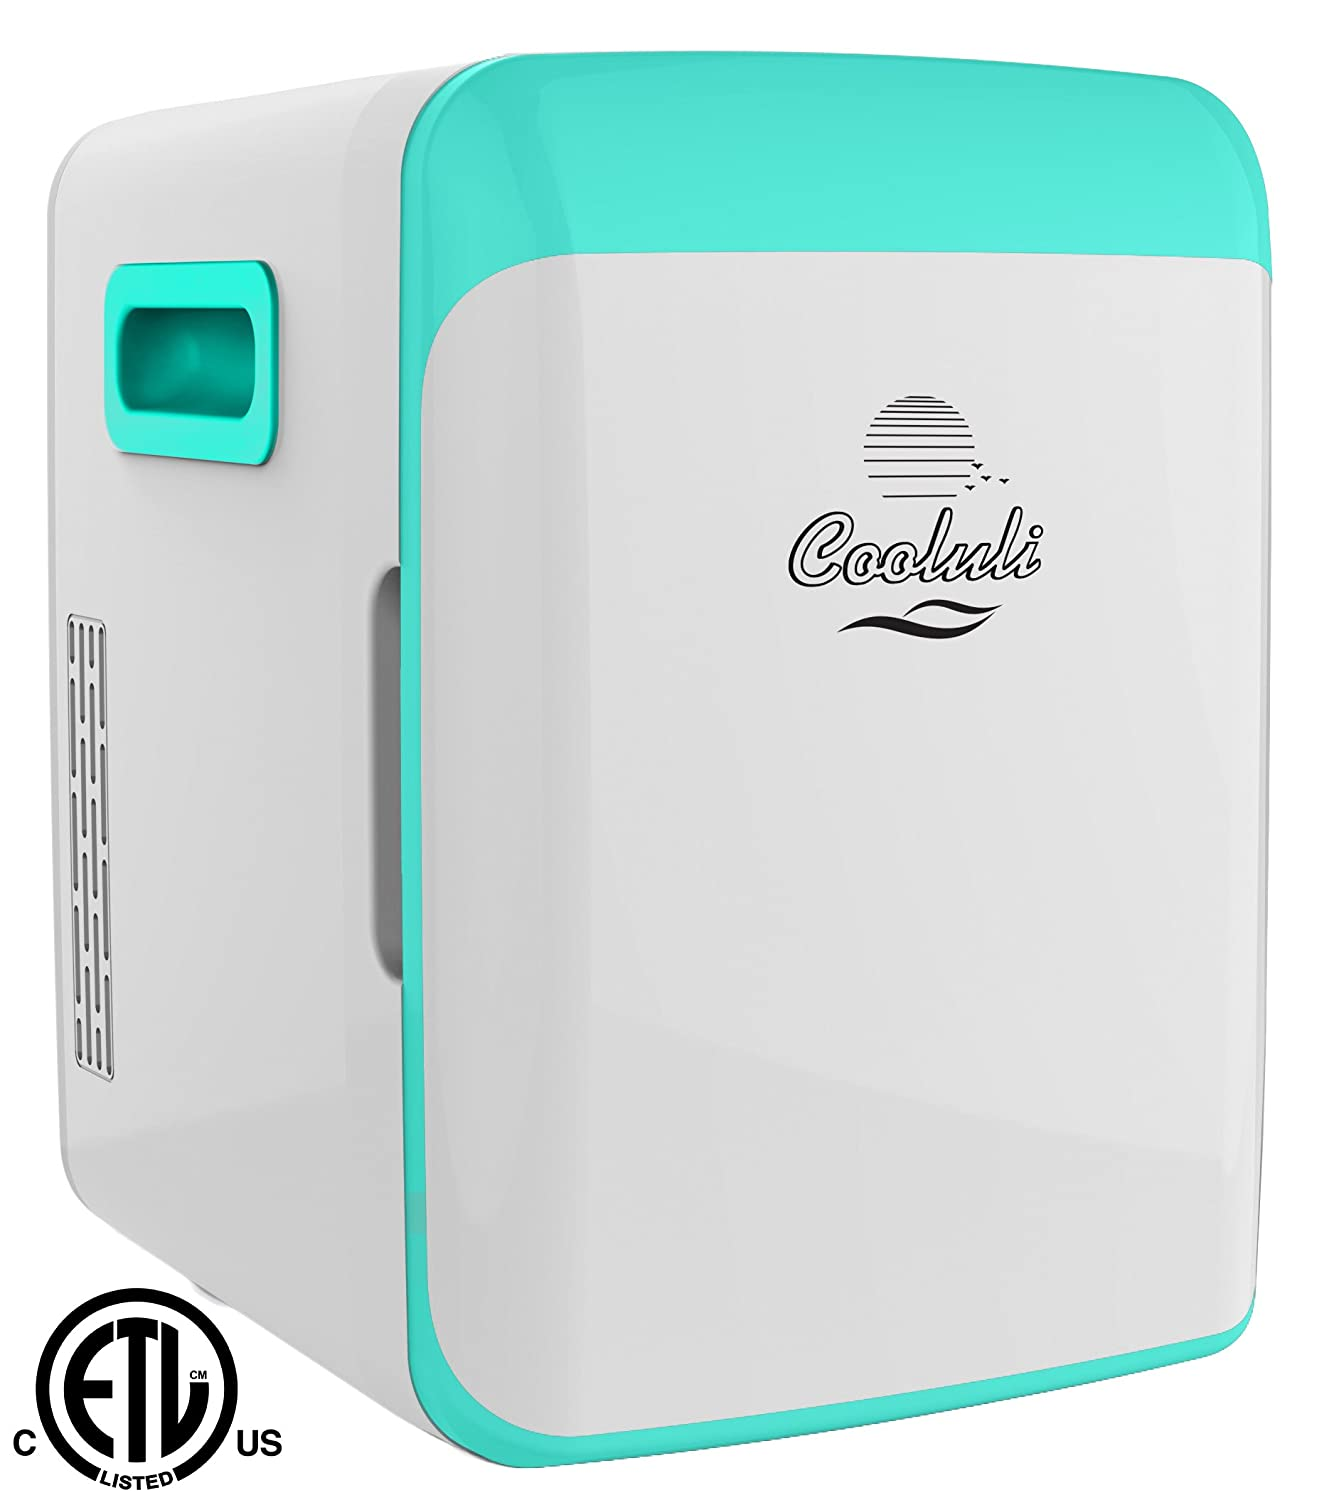 Cooluli CMF15LT Mini Fridge Electric Cooler and Warmer AC/DC Portable Thermoelectric System, Compact Refrigerator, 15 Liter/18 Can, Turquoise